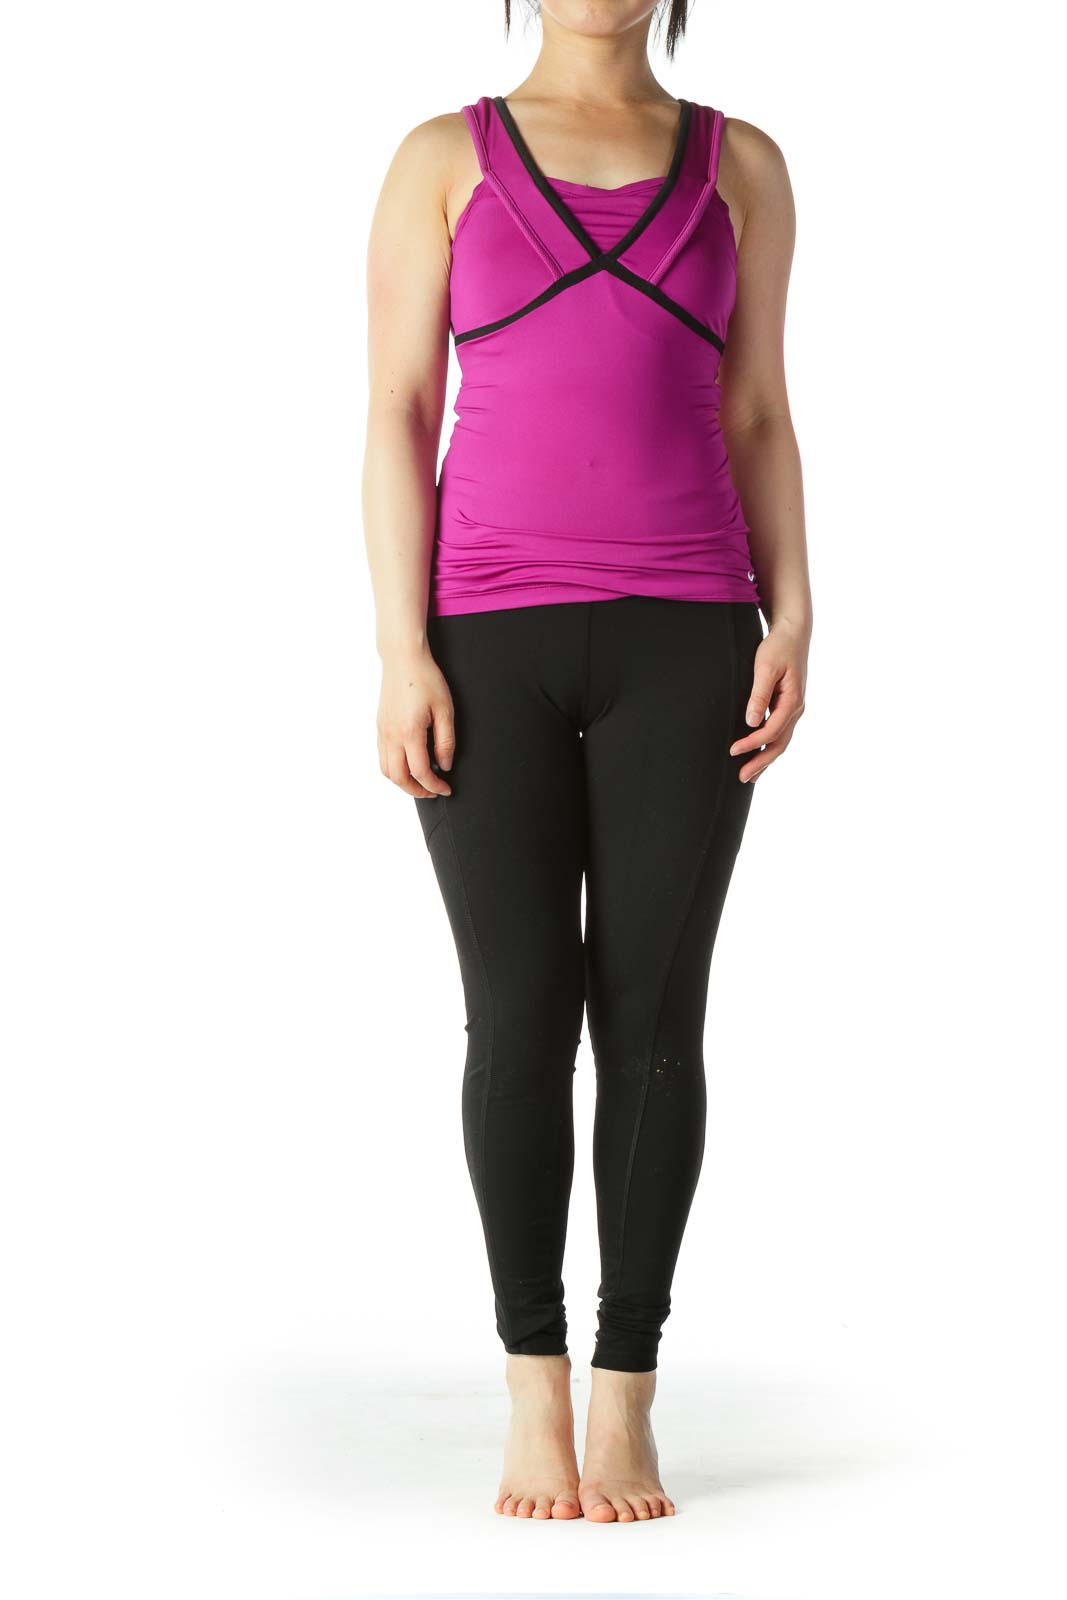 Purple Black Mesh-Trim Sports Top with Built-In Bra